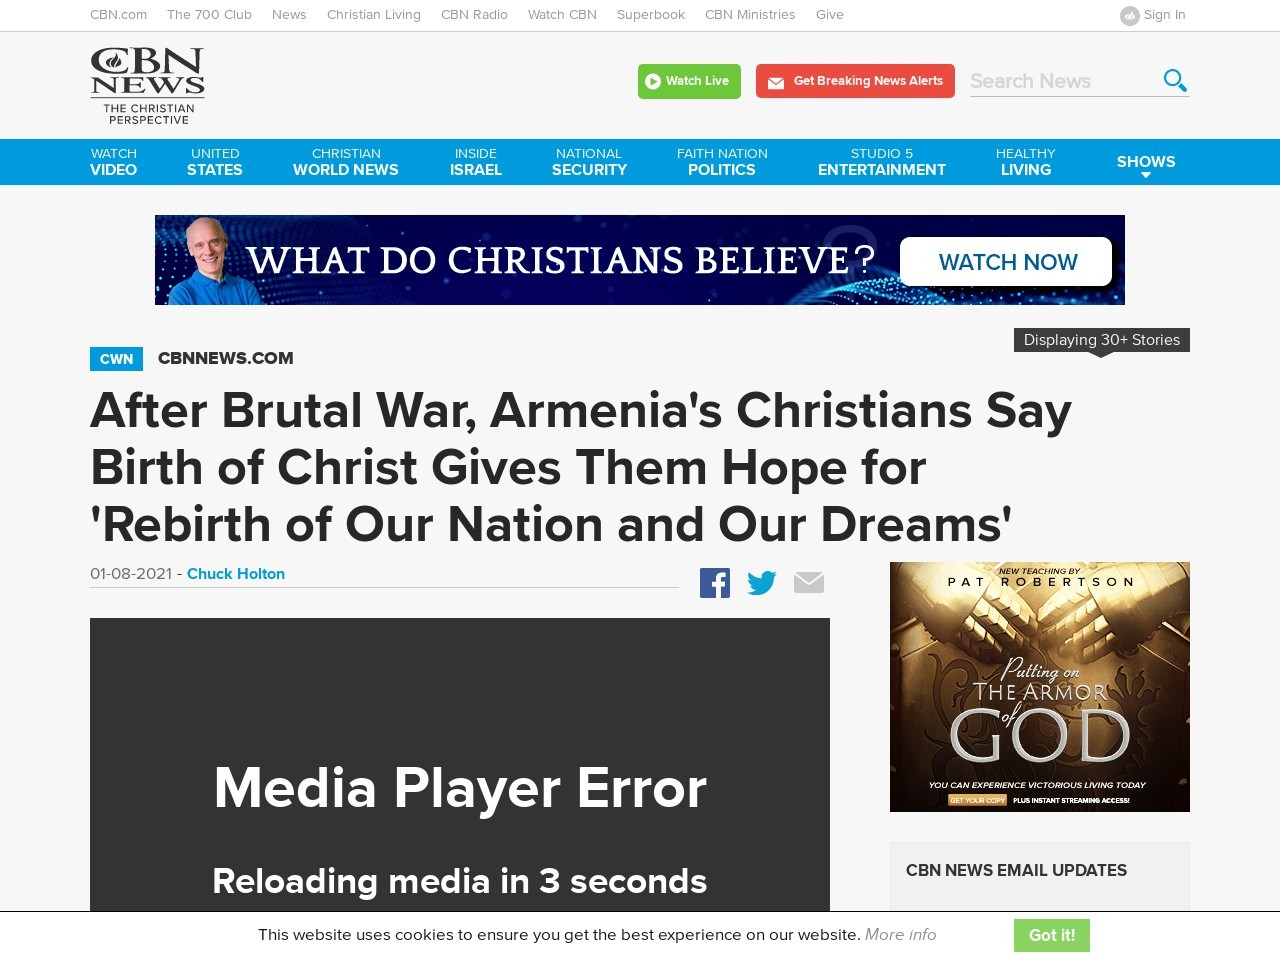 After Brutal War, Armenia's Christians Say Birth of Christ Gives Them Hope for 'Rebirth of Our Nation and Our Dreams'